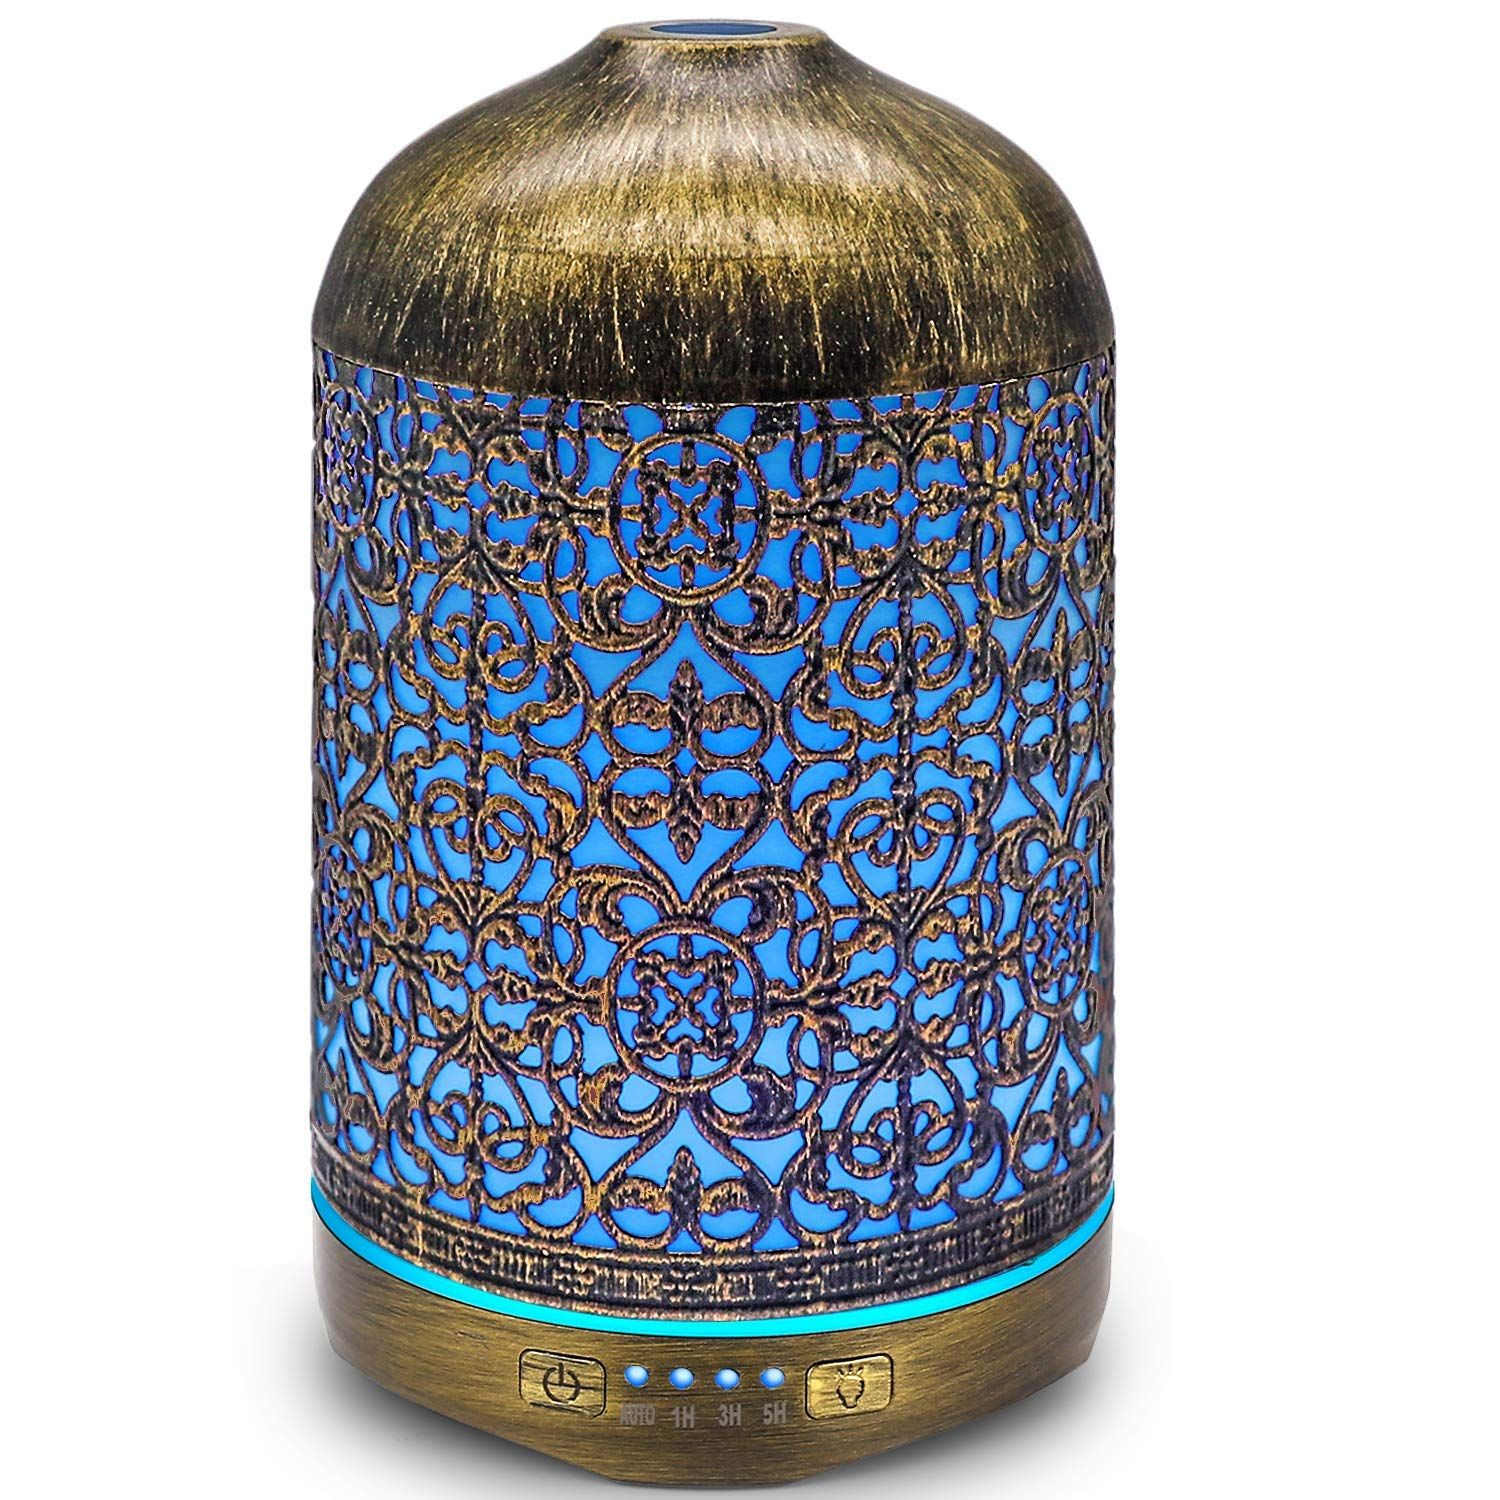 Infinitoo Aroma Diffuser 260ml Luftbefeuchter Metall Aromatherapie Diffusor Faœr A Therische A Le In 2020 Duftlampe Diffusor Licht